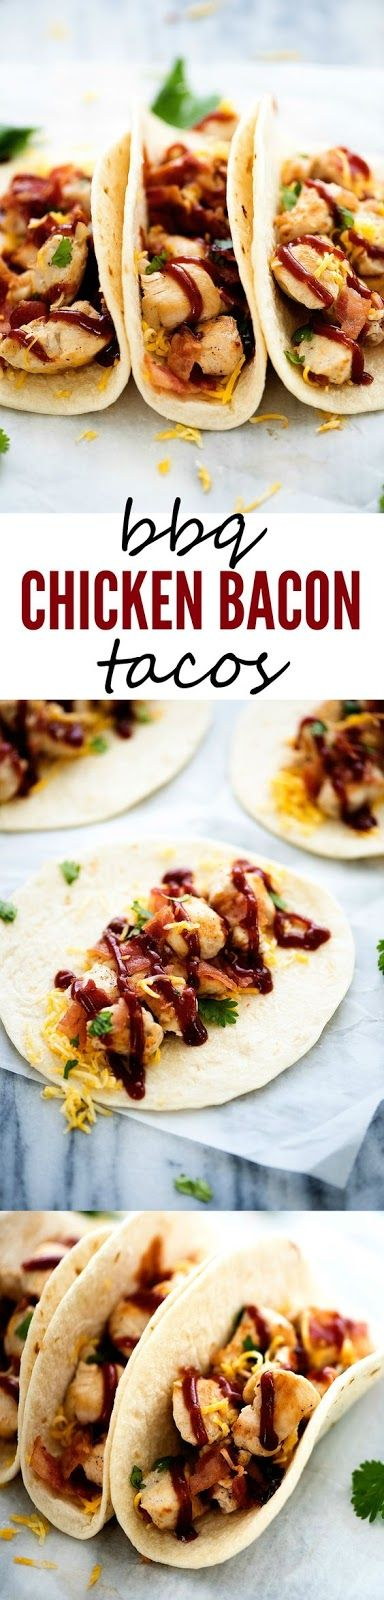 BBQ CHICKEN BACON TACOS | Food And Cake Recipes